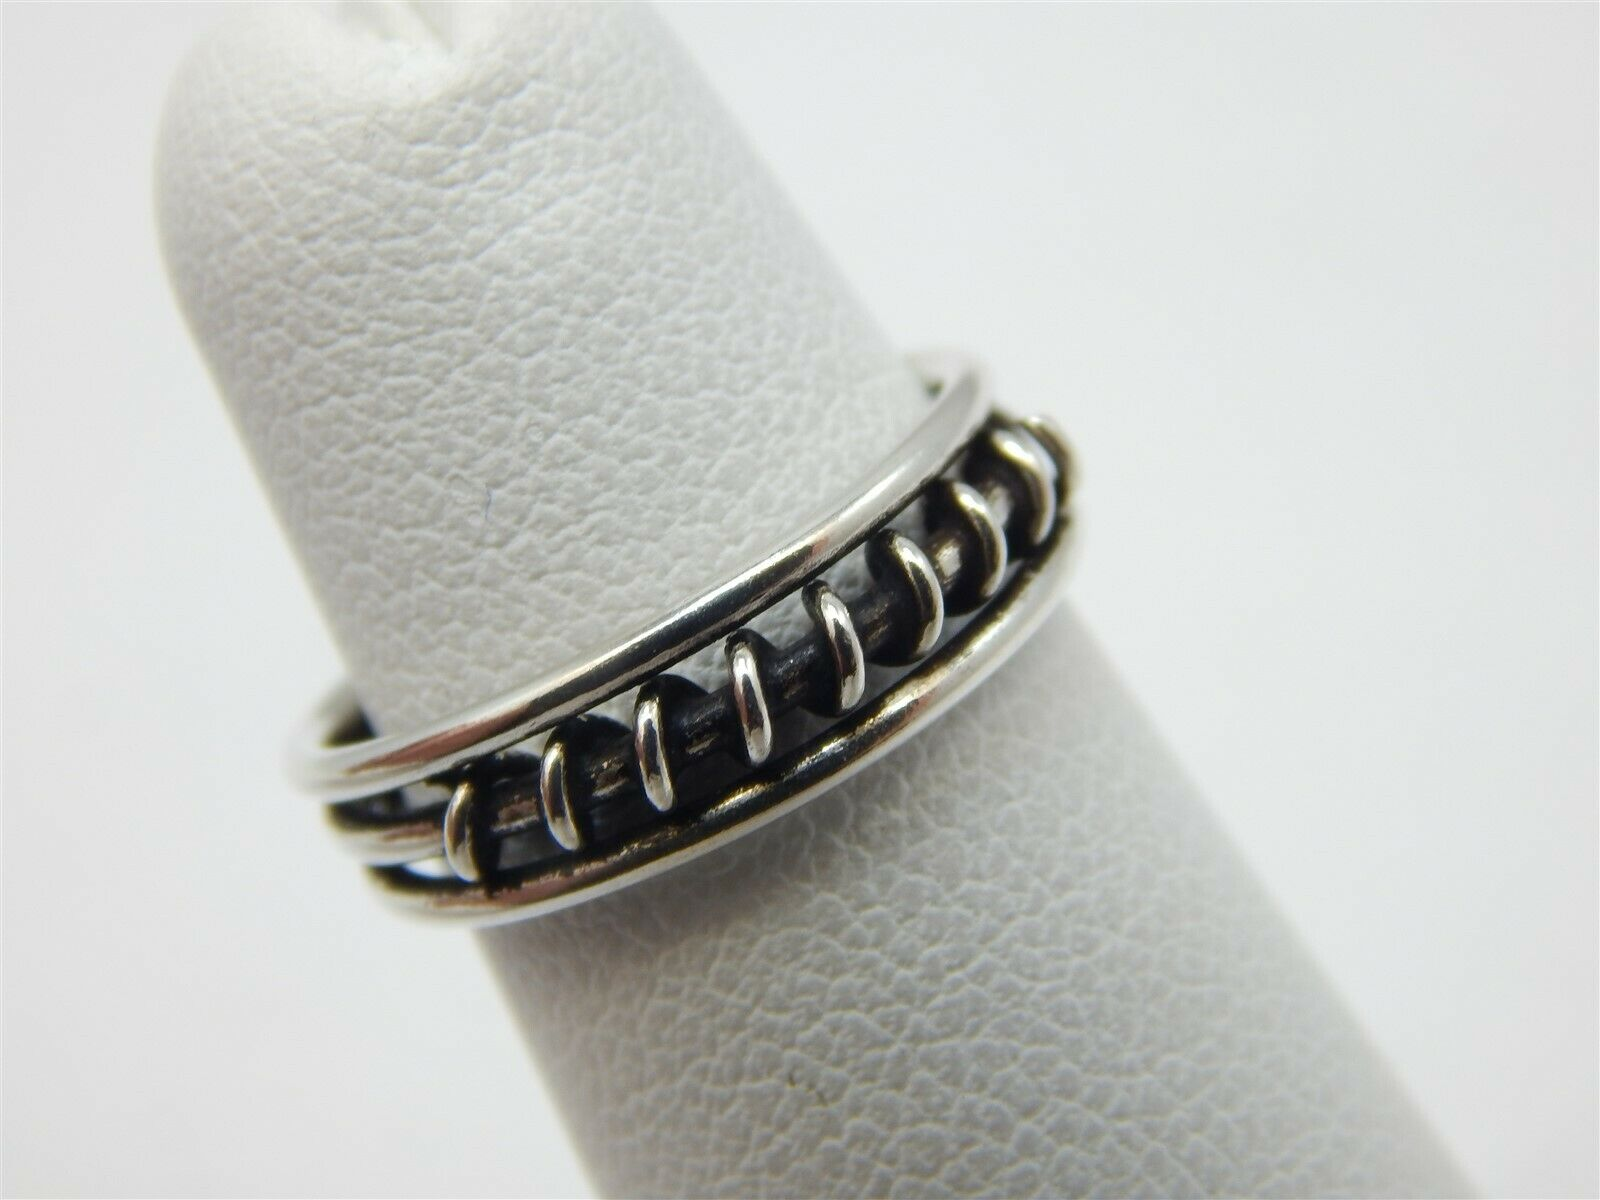 Lava Stone Jewelry Swirl Lava Wrapped Ring Wire Ring Adjustable Ring